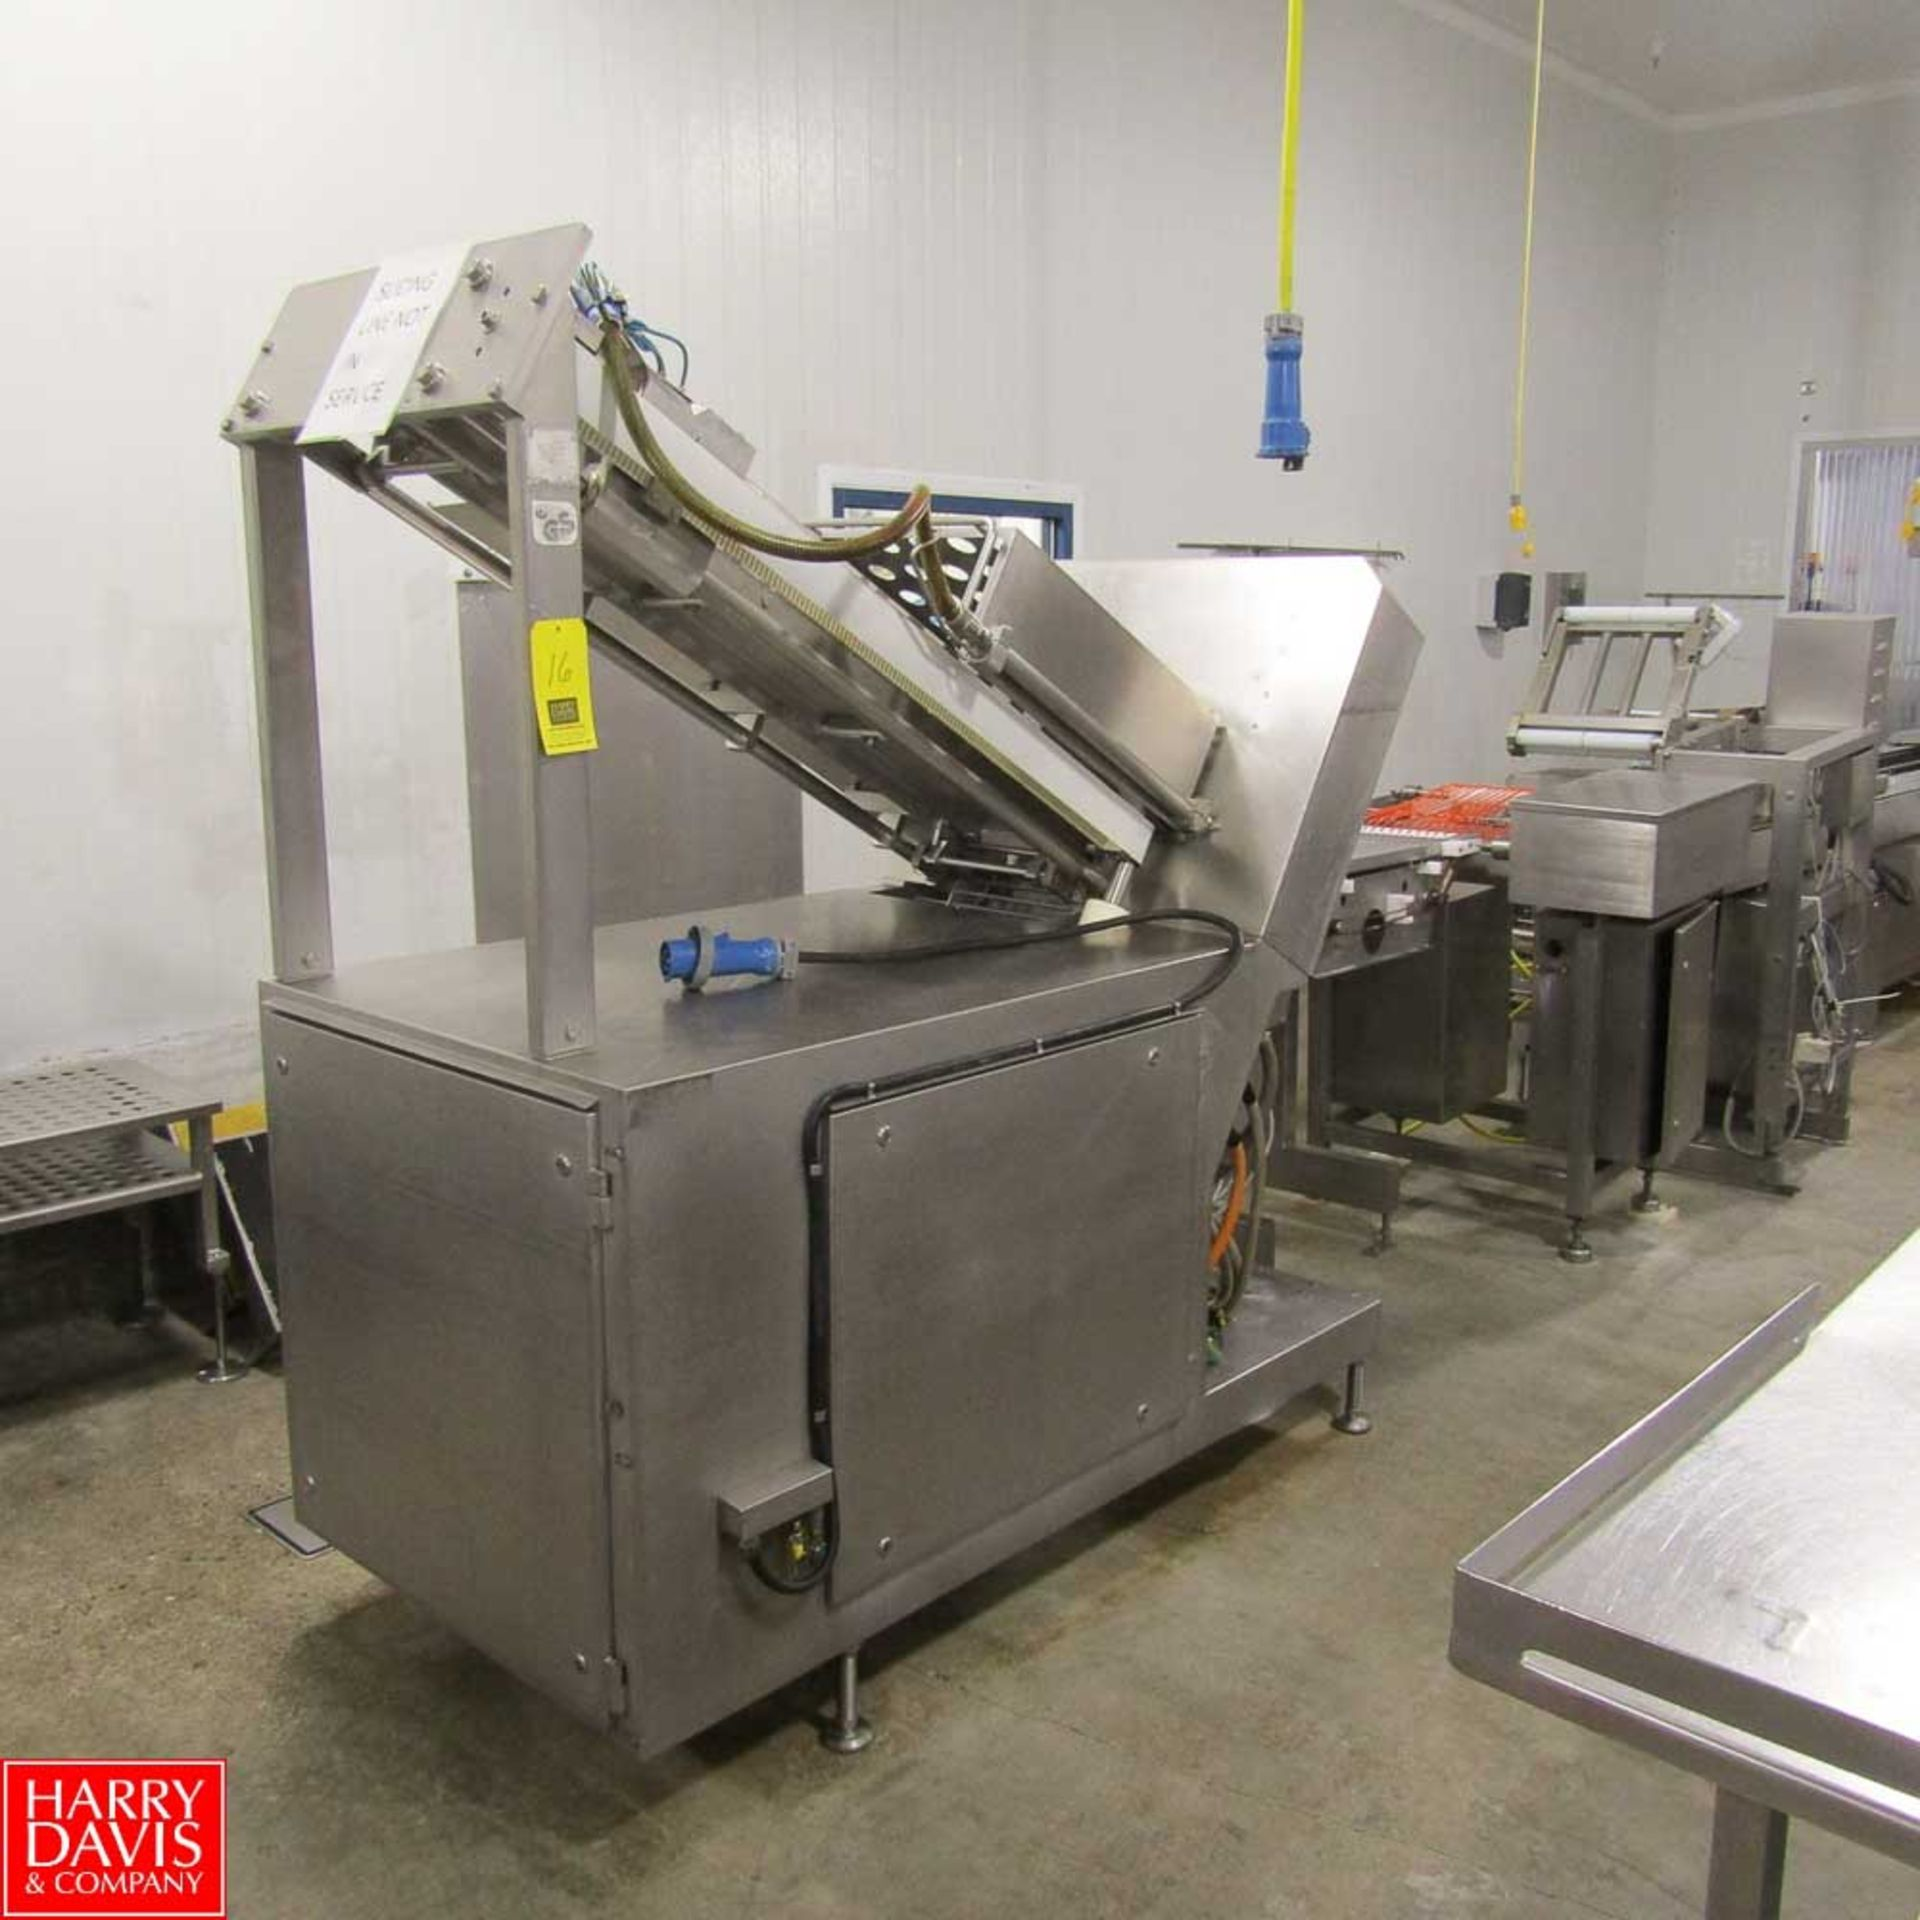 Lot 16 - GS Slicer Model SL-495 with Weight Scale and Rejector Unit Rigging Fee: 250